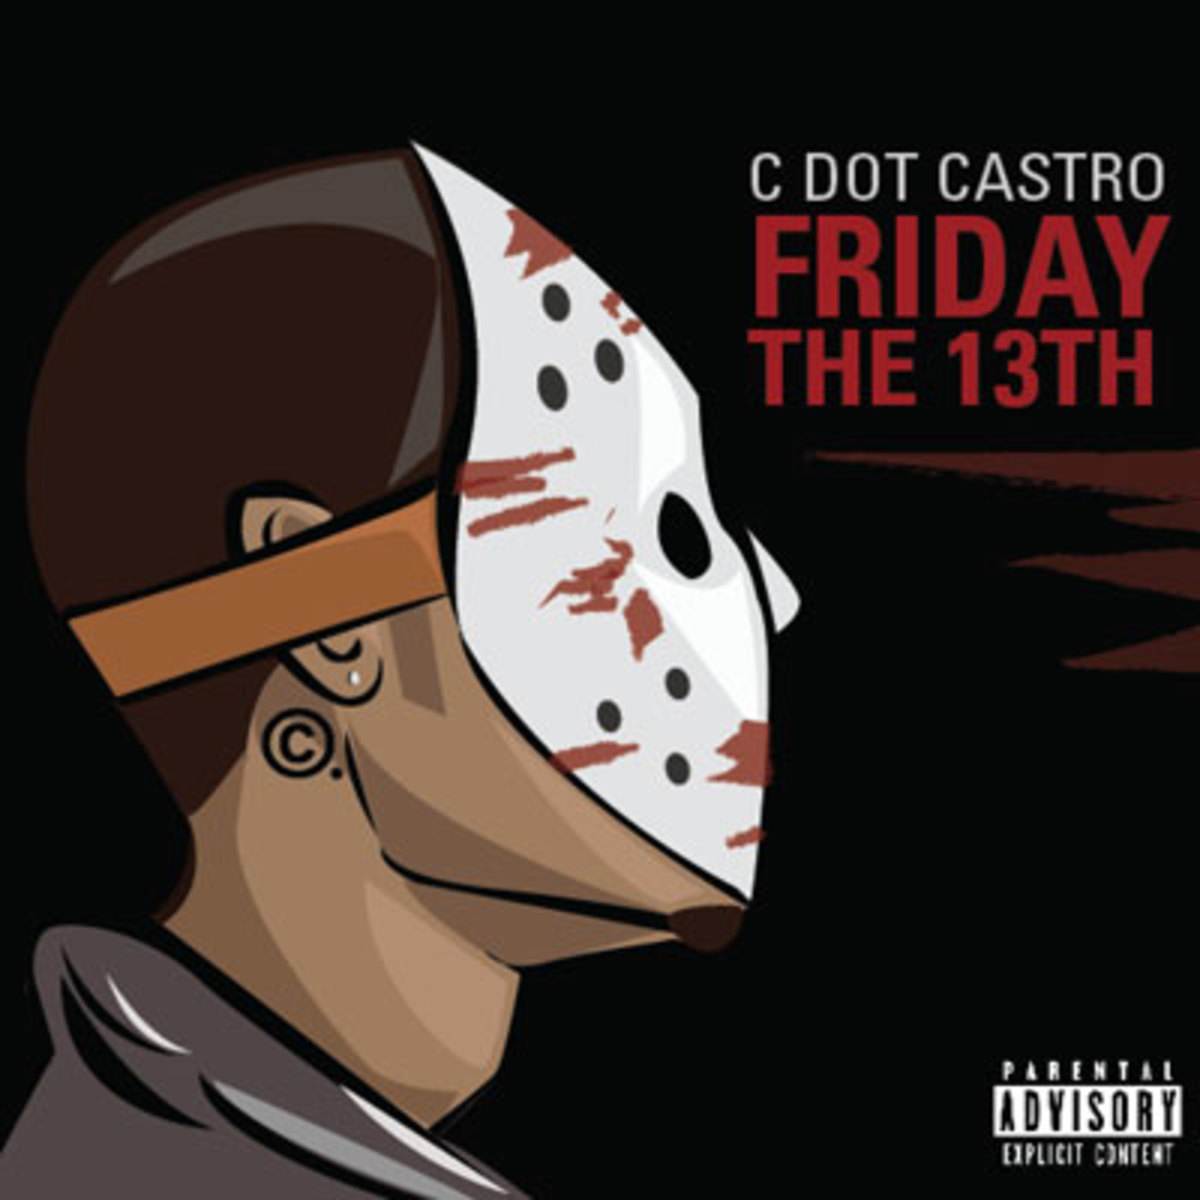 cdotcastro-friday13th.jpg